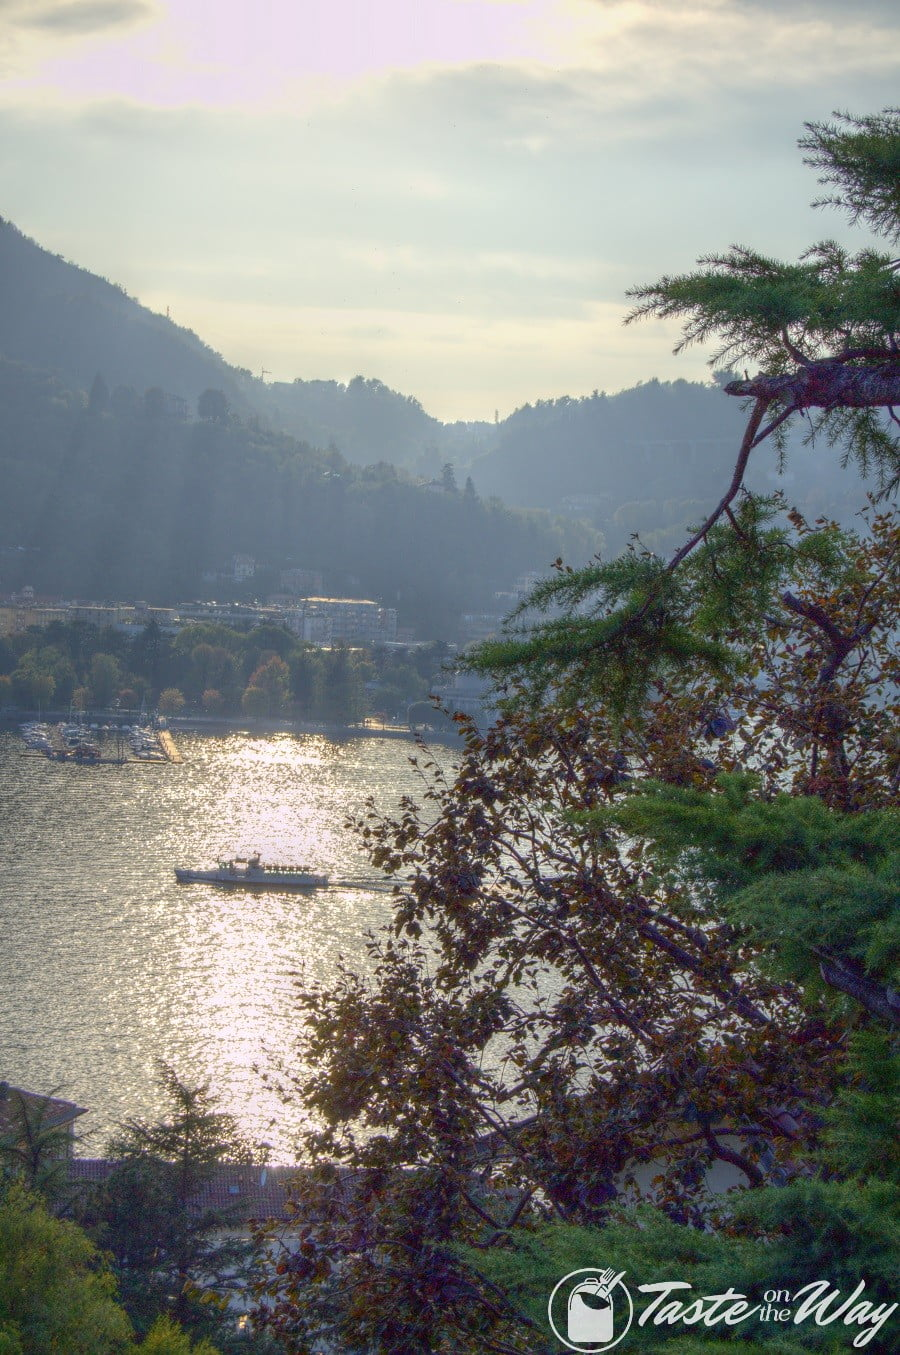 Check out 15+ amazing #views of Lake Como, #Italy! #travel #photography @tasteontheway